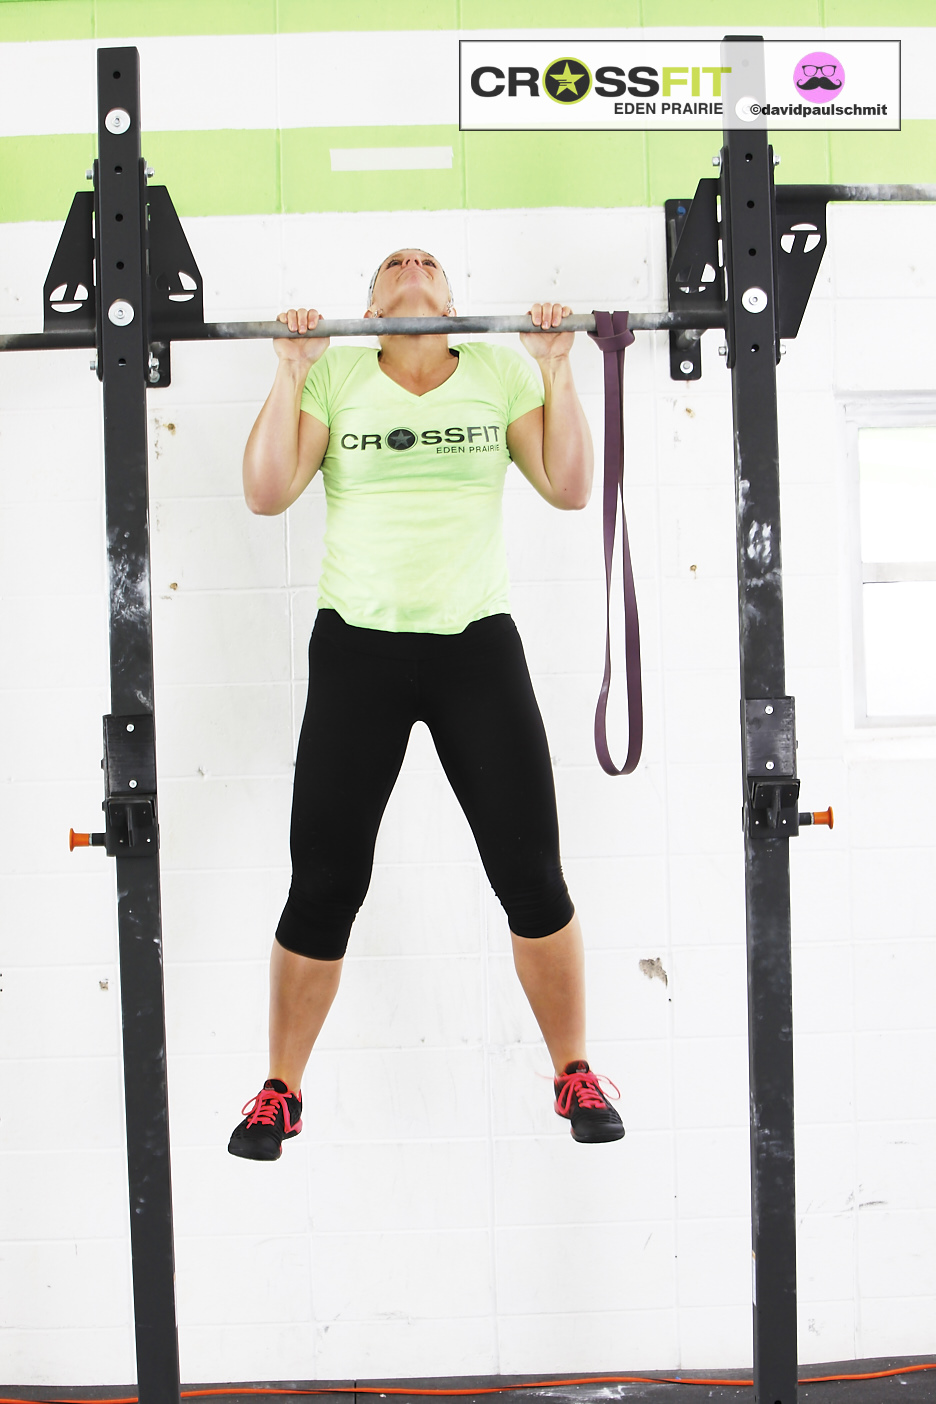 Genell H. showing a perfect RX rep with her chin above the bar...